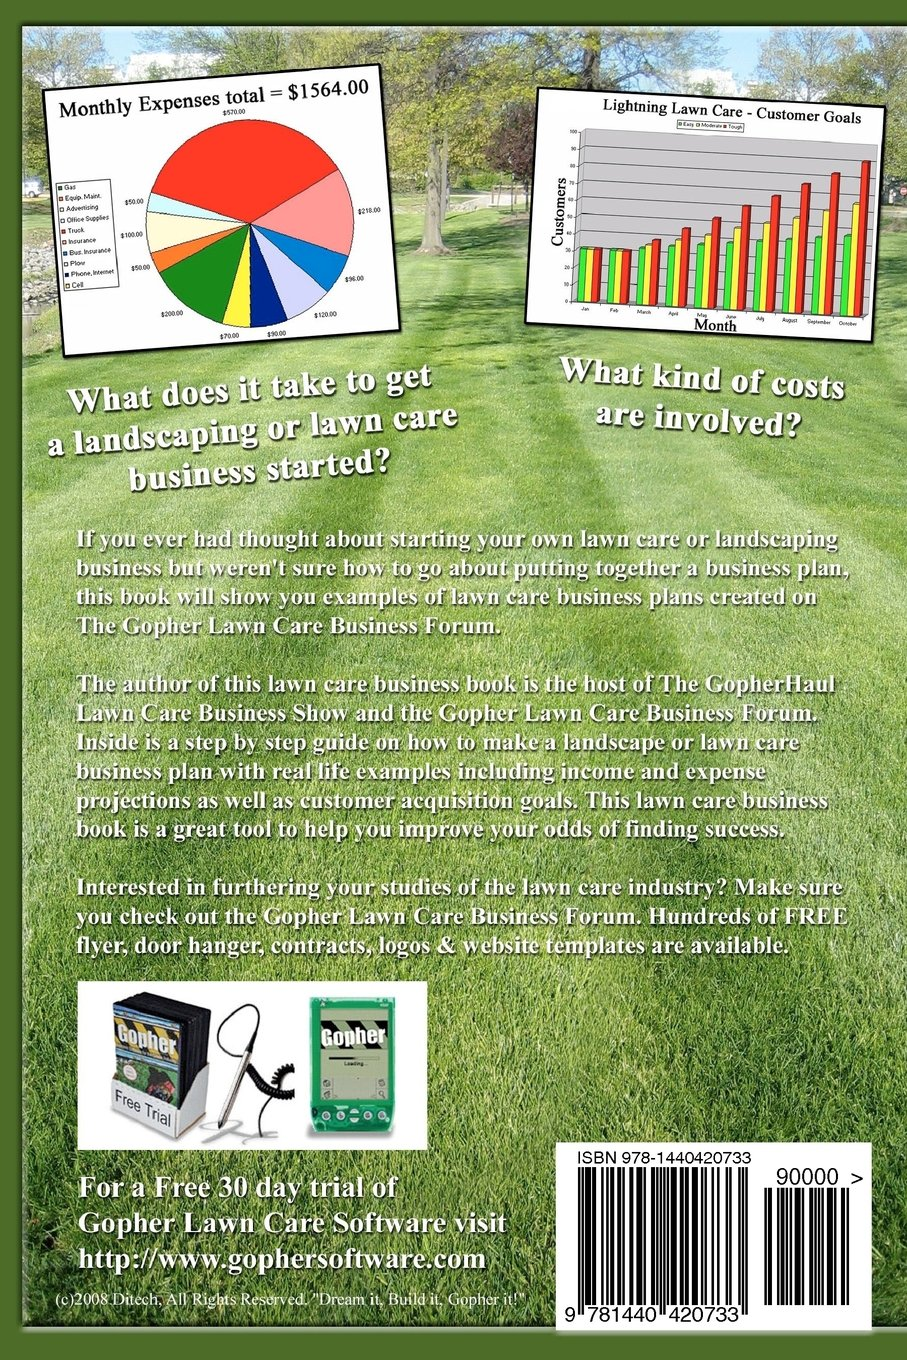 The Landscaping And Lawn Care Business Plan Startup Guide.: A Step By Step  Guide On How To Make A Landscape Or Lawn Care Business Plan With Real Life  ... - The Landscaping And Lawn Care Business Plan Startup Guide.: A Step